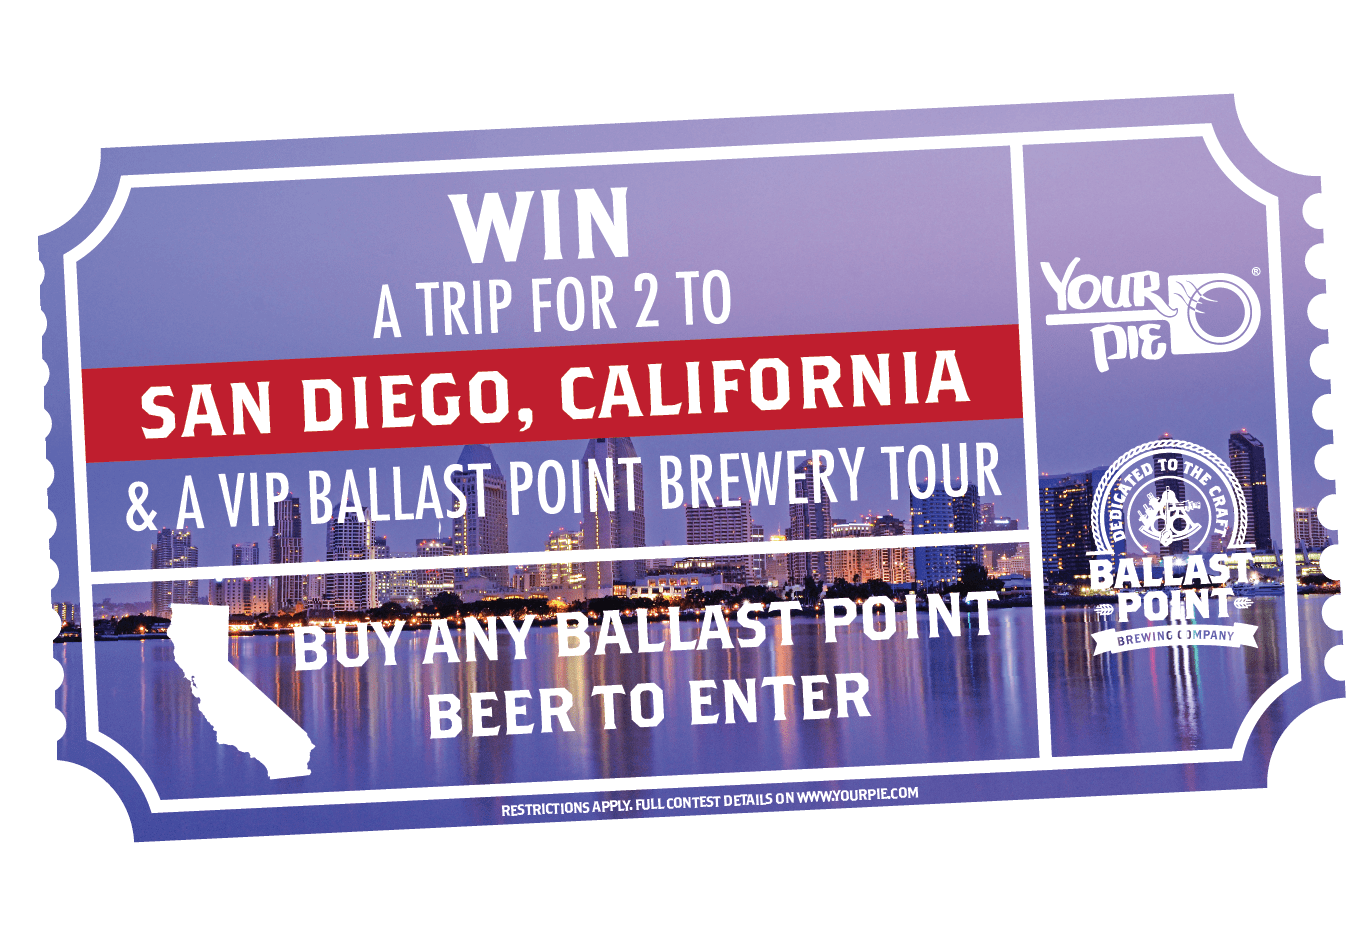 Win a Trip to San Diego with Your Pie & Ballast Point!